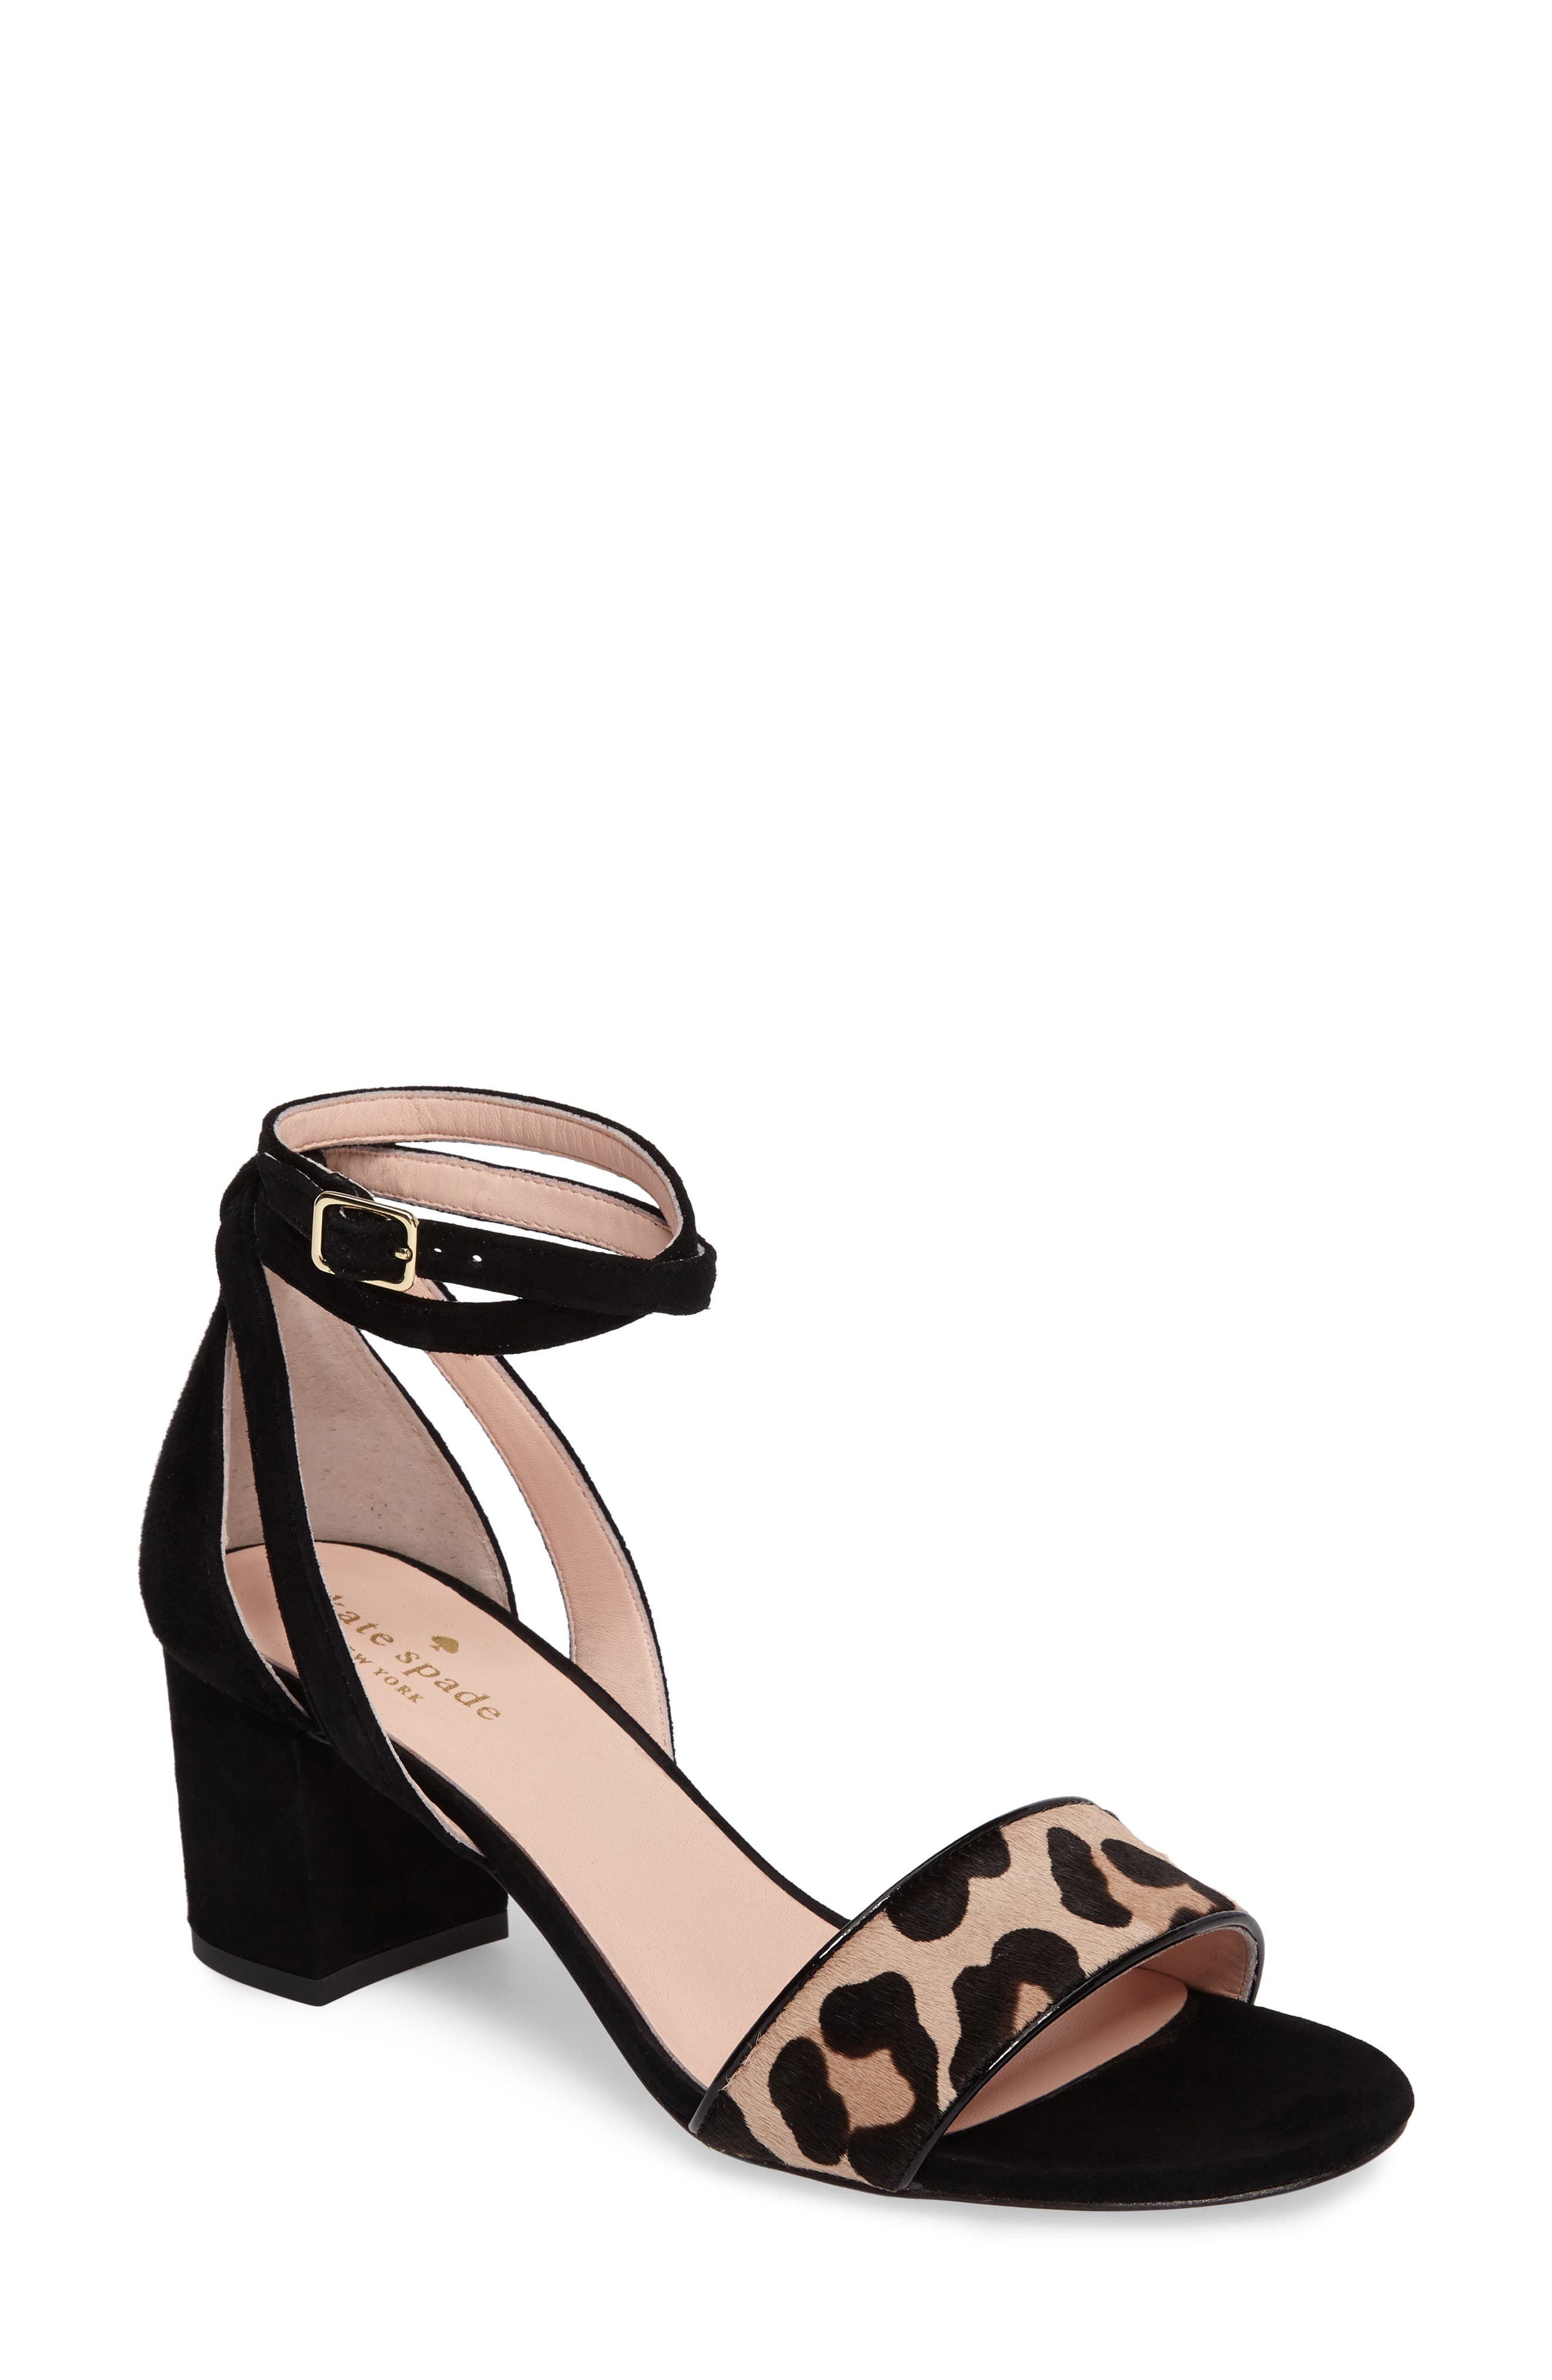 kate spade new york watson genuine calf hair block heel sandal (Women)